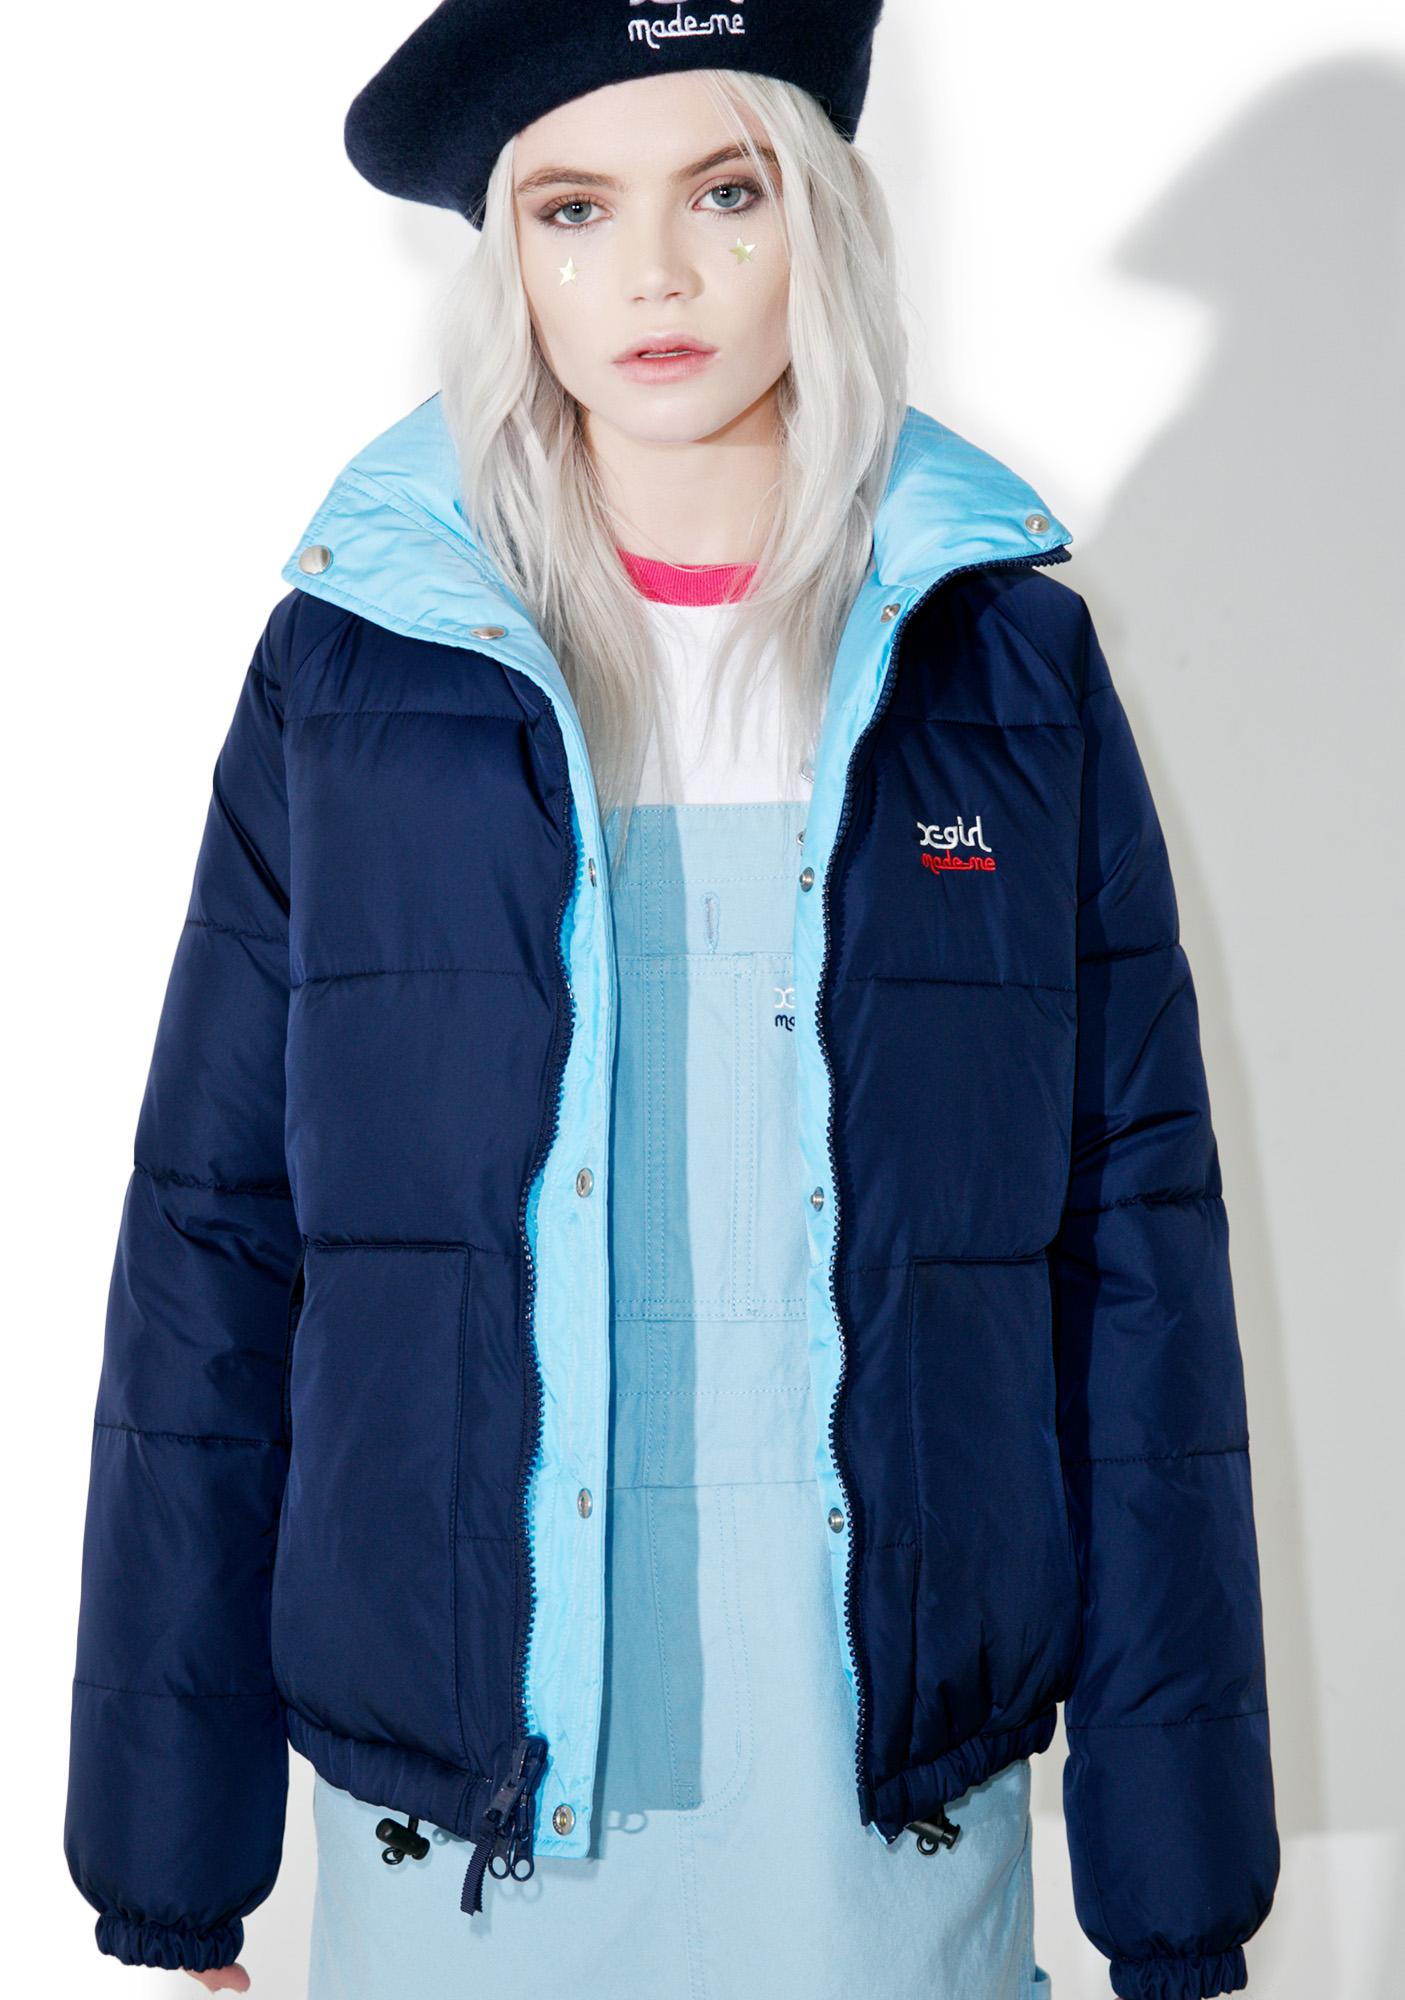 MadeMe x X-Girl Reversible Puffy jacket